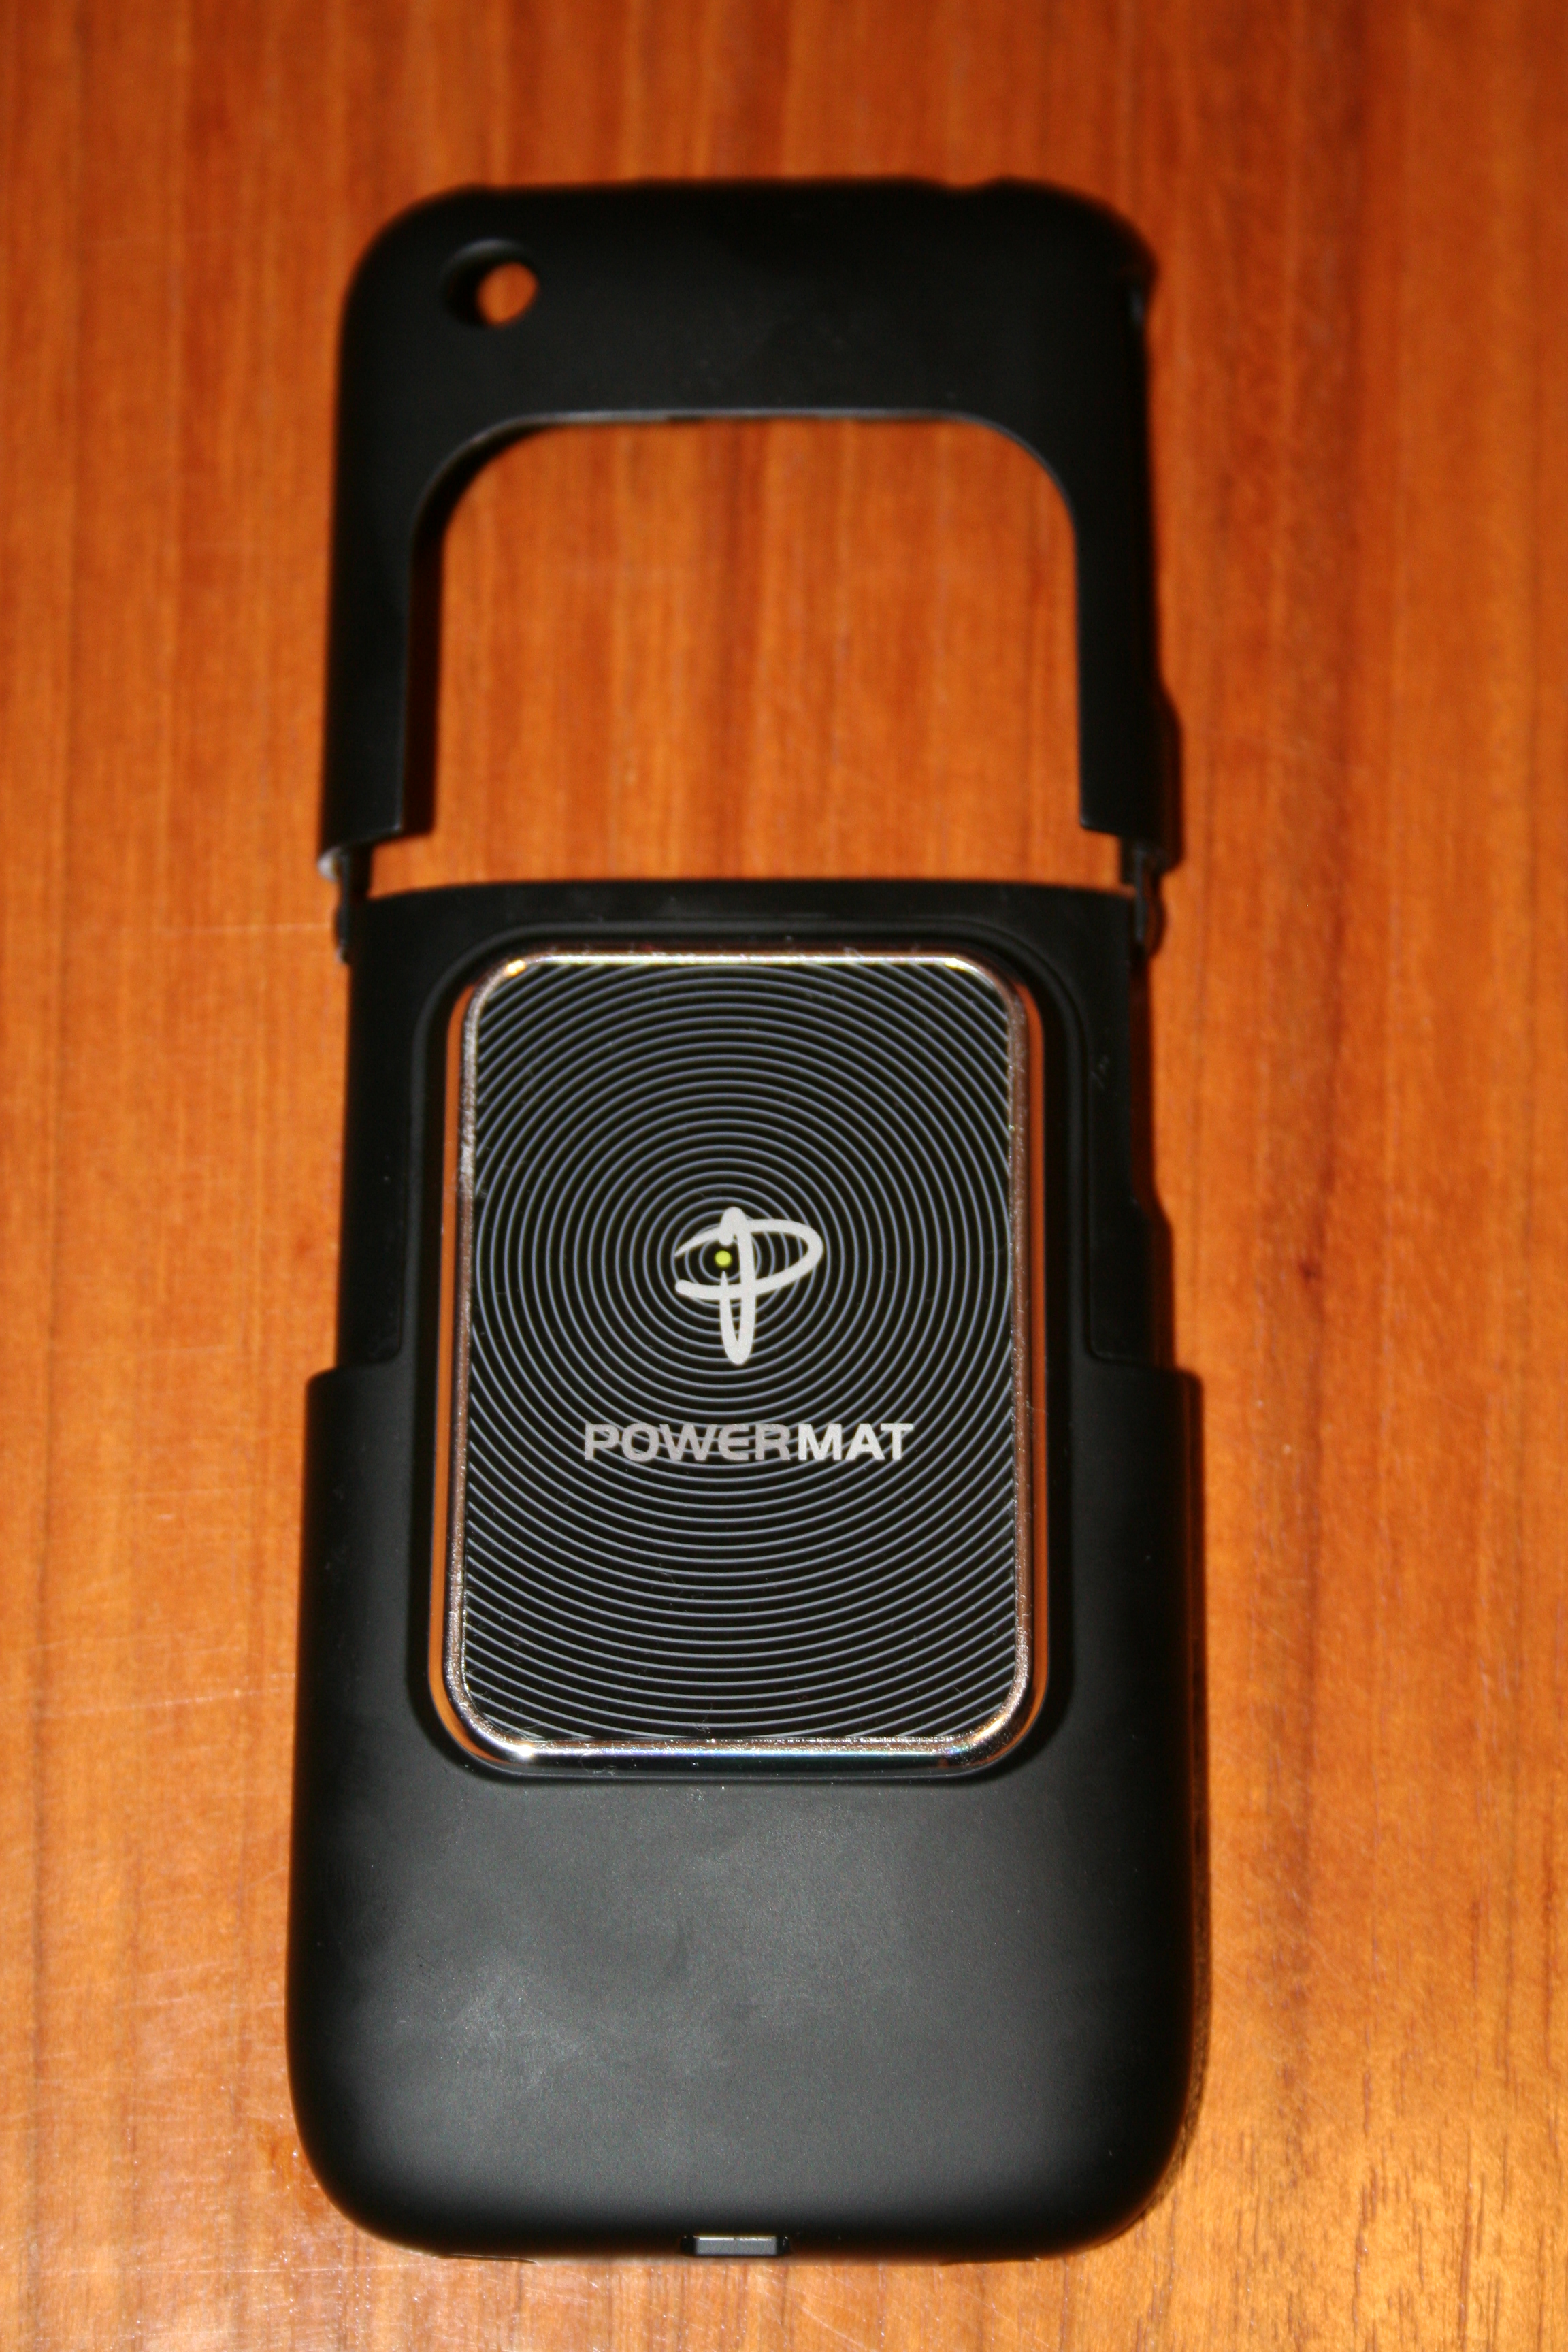 powermat wireless charging technology boydo 39 s tech talk. Black Bedroom Furniture Sets. Home Design Ideas